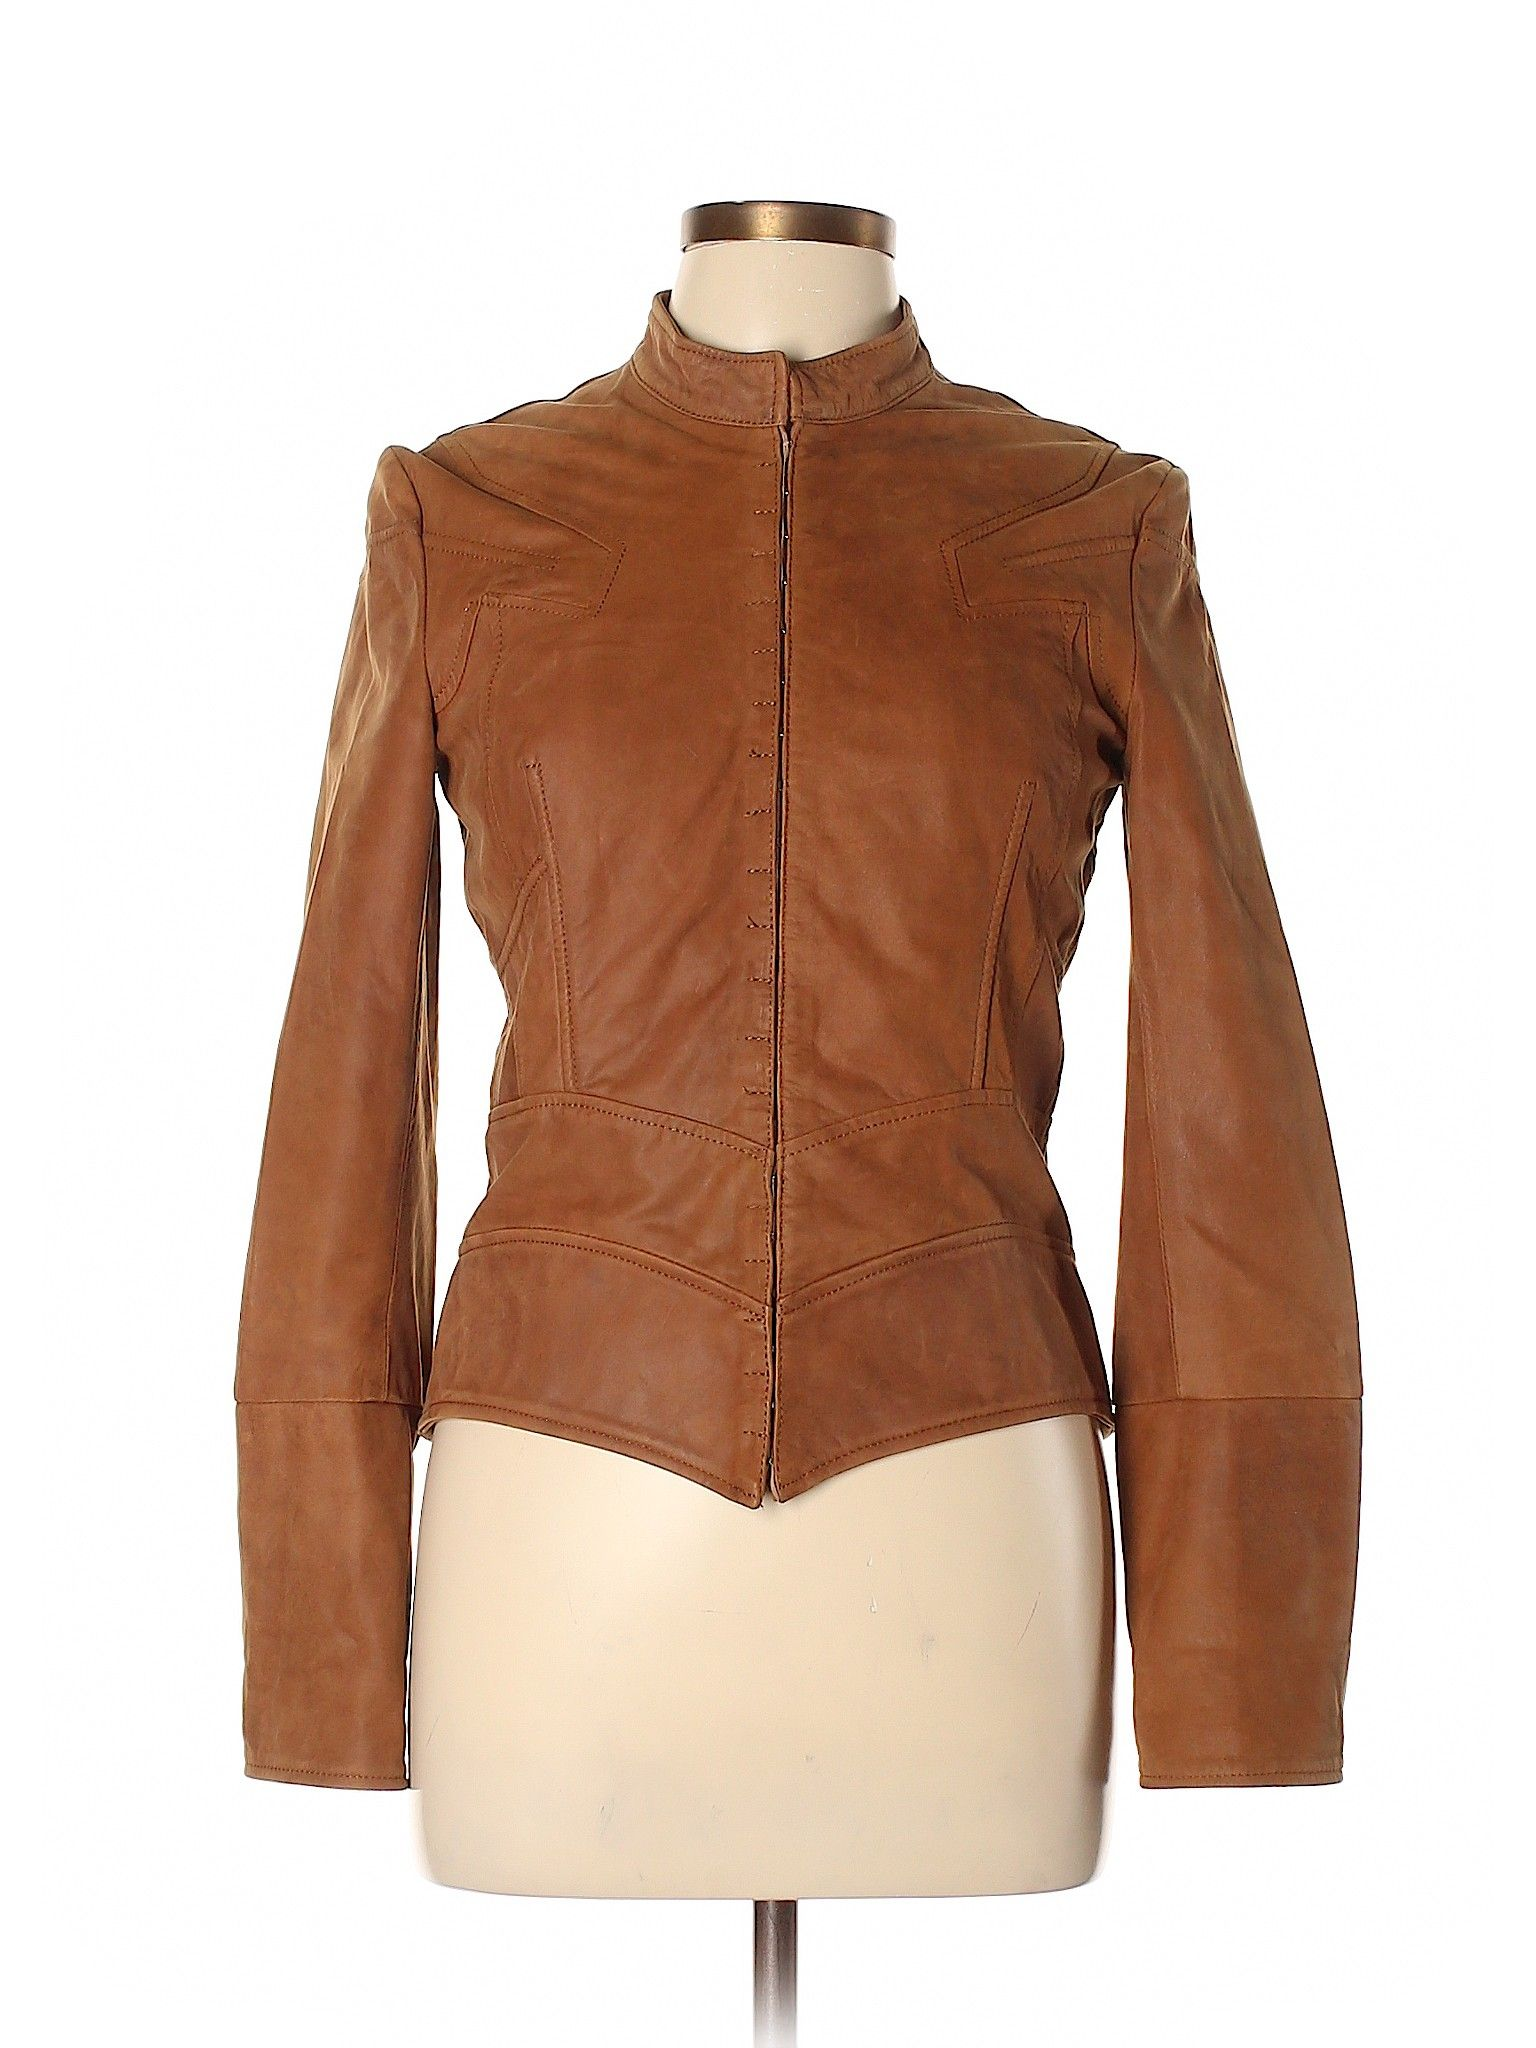 The 9 Best Sustainable and Recycled Leather Jacket Brands